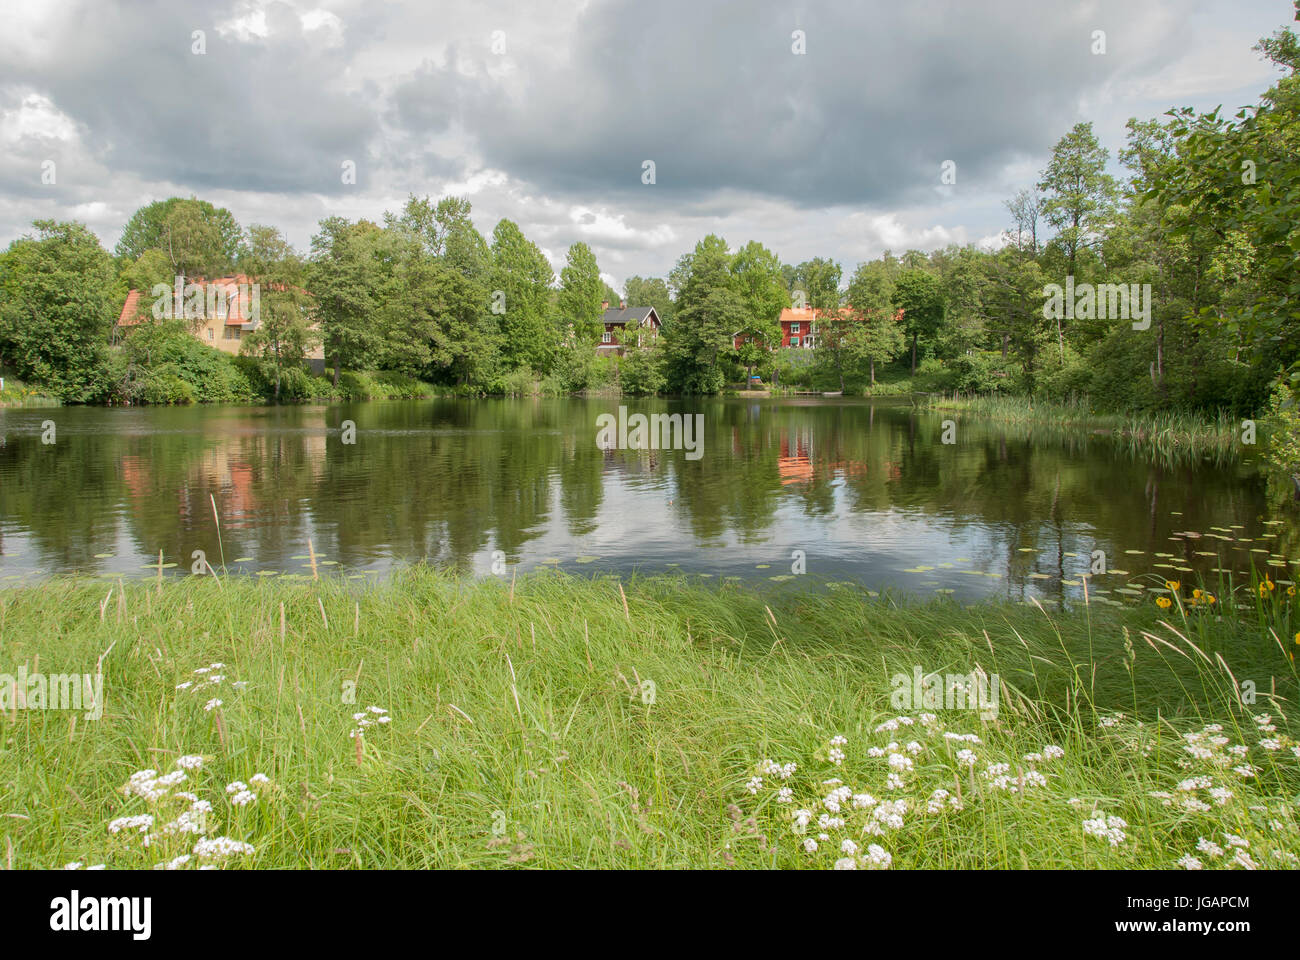 By the river in summer - Stock Image